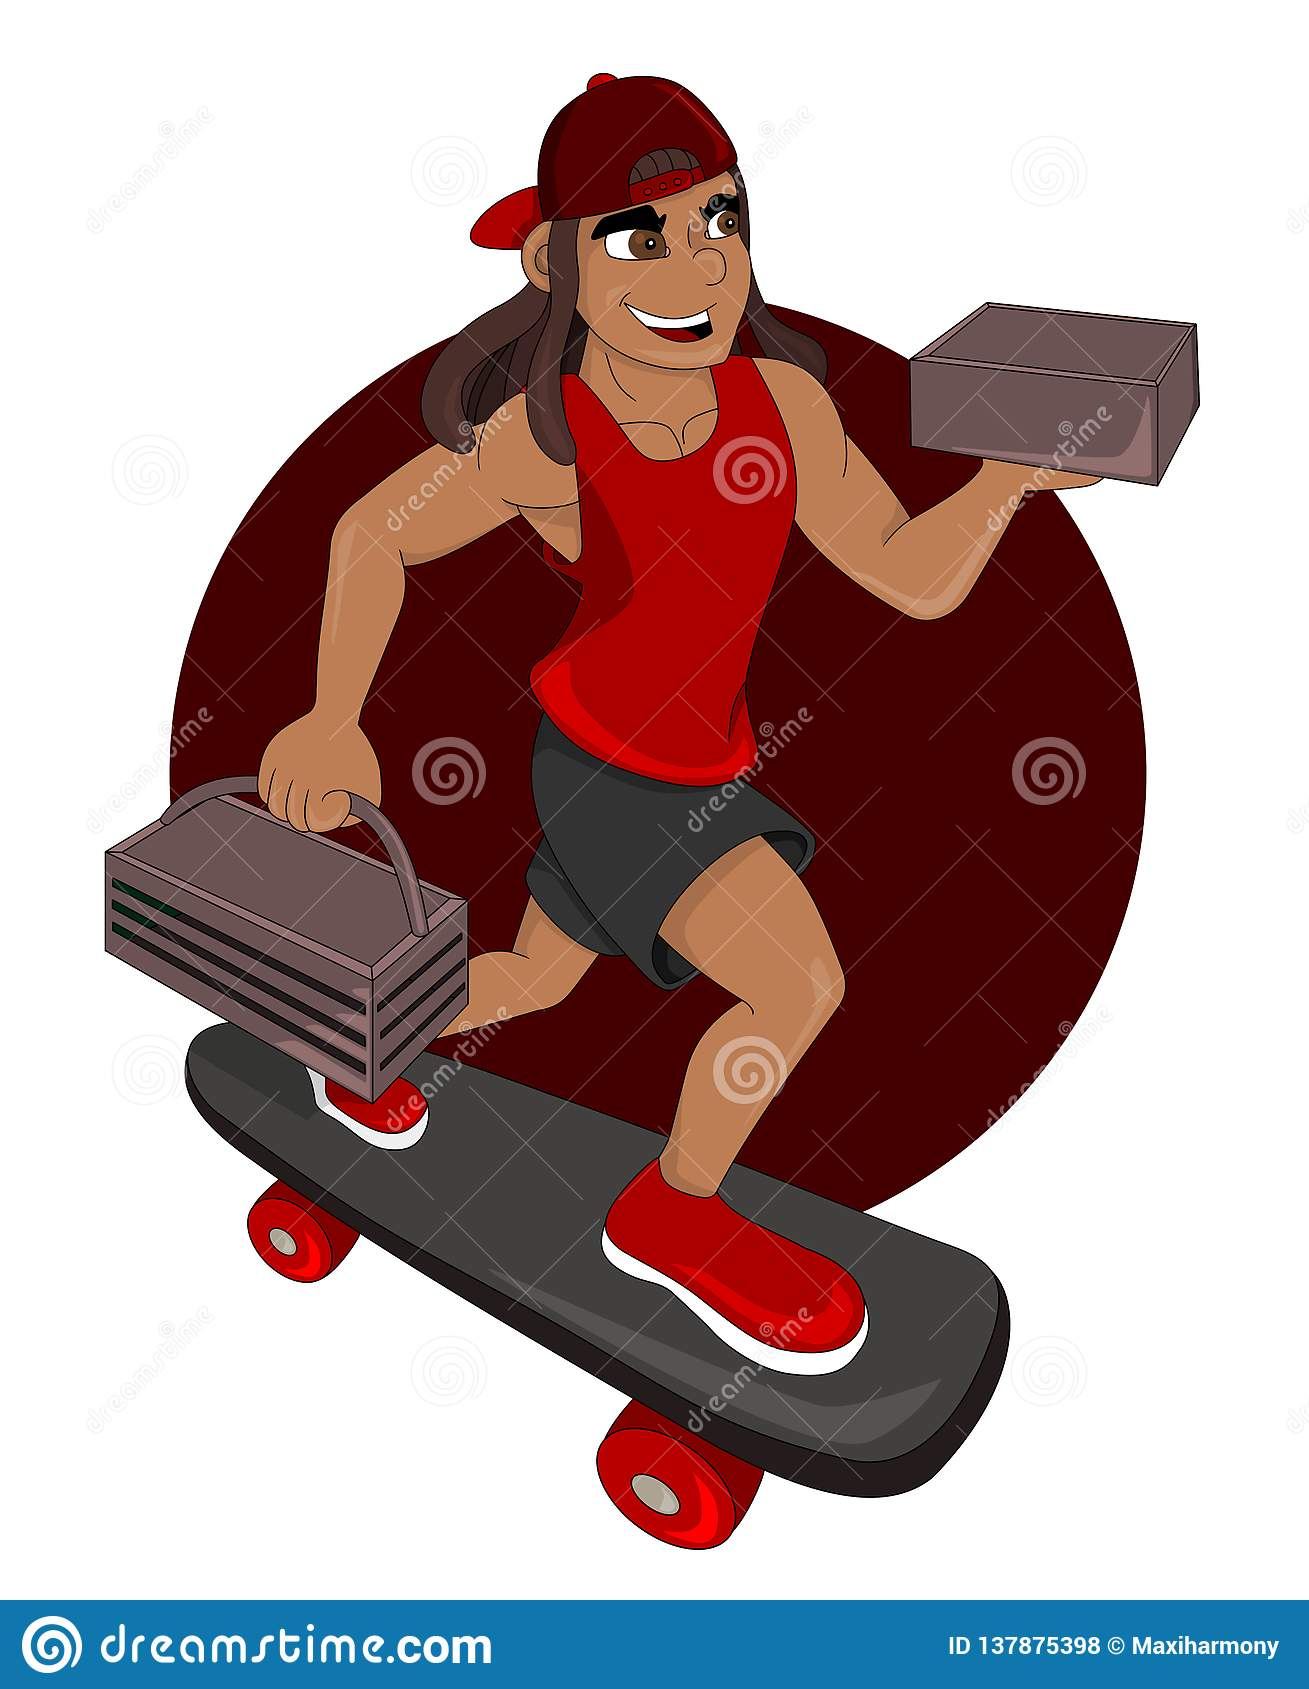 Cartoon of a delivery man riding a skateboard